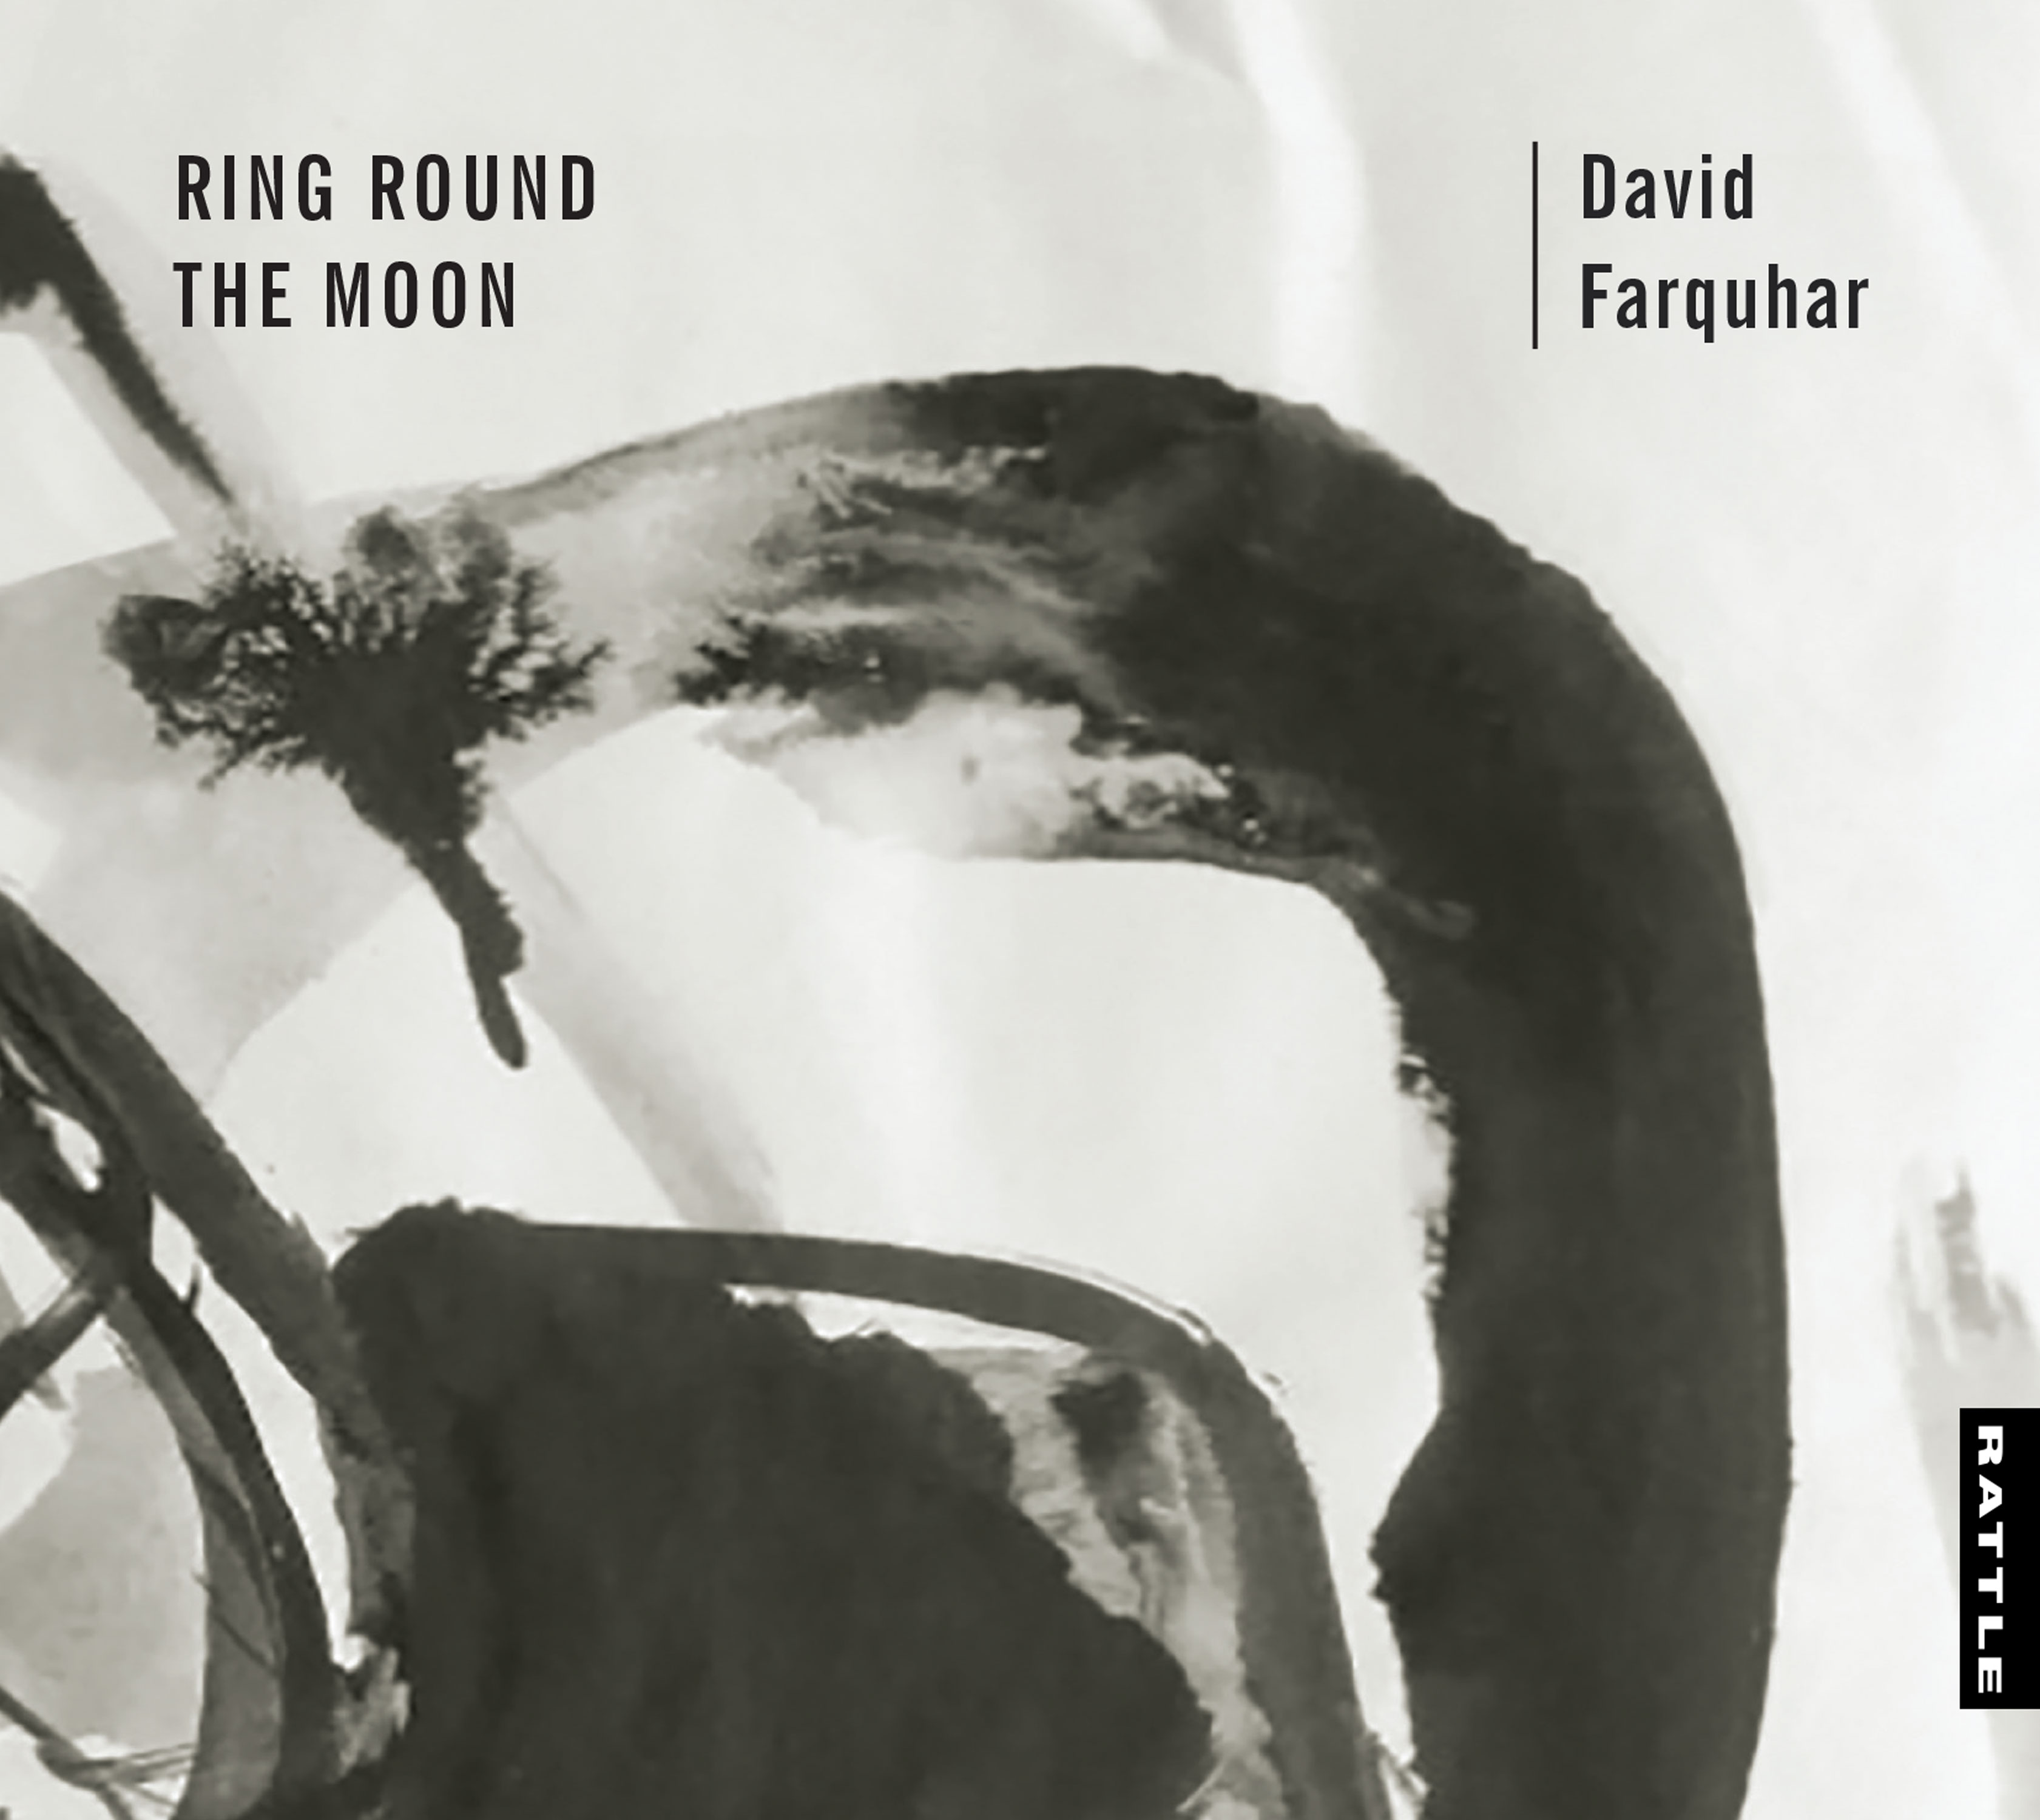 David Farquhar | Ring Round the Moon - downloadable MP3 ALBUM